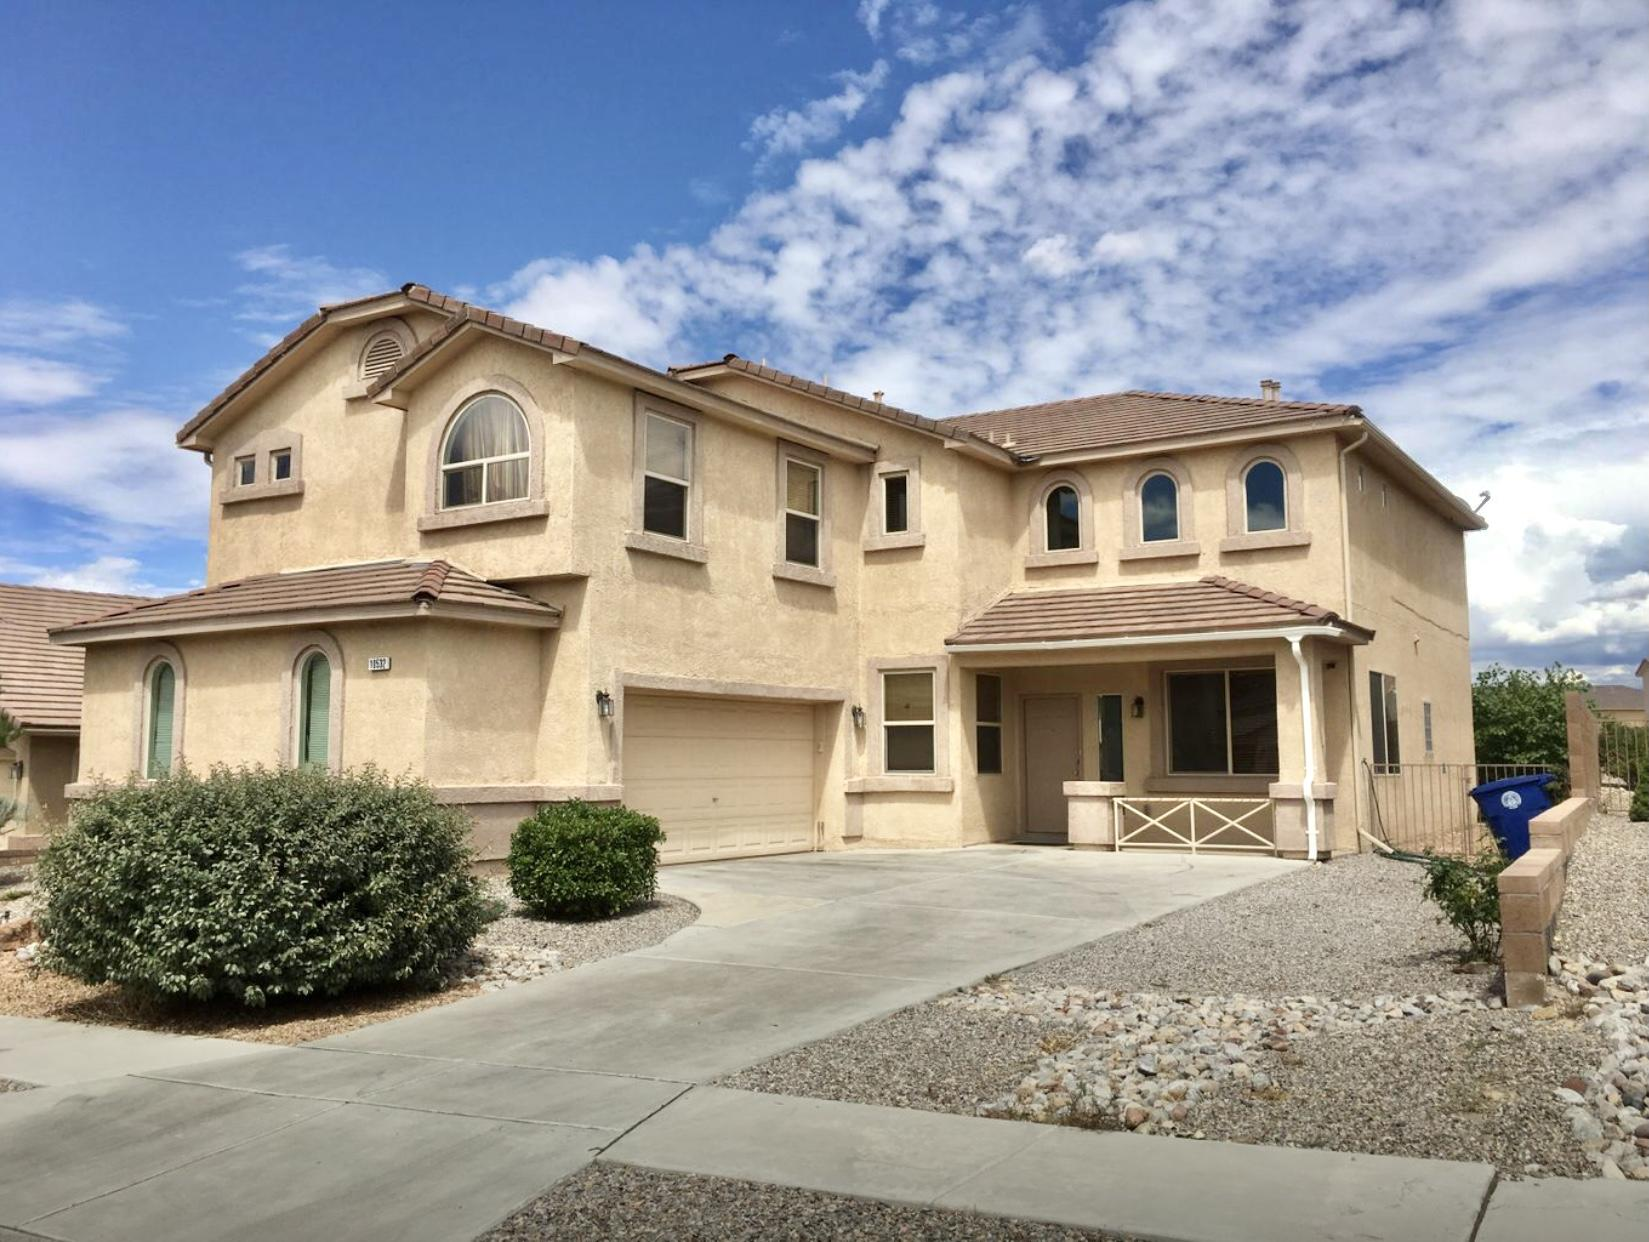 Wonderful Home in the Desirable Ventana Ranch Neighborhood! 4 Bedrooms plus an Office and a Loft. Oversized windows let in tons of natural light. 2 Living areas. Huge Master Bedroom with jetted tub and shower in master bath, plus walk-in closet. Downstairs has kitchen and breakfast nook plus dining room. Nicely landscaped Front and Back yards. There is a large Park at the beginning of the block. There is no neighbor directly behind the house, because there is a small park behind the home. Beautiful, Beautiful, Beautiful!!!